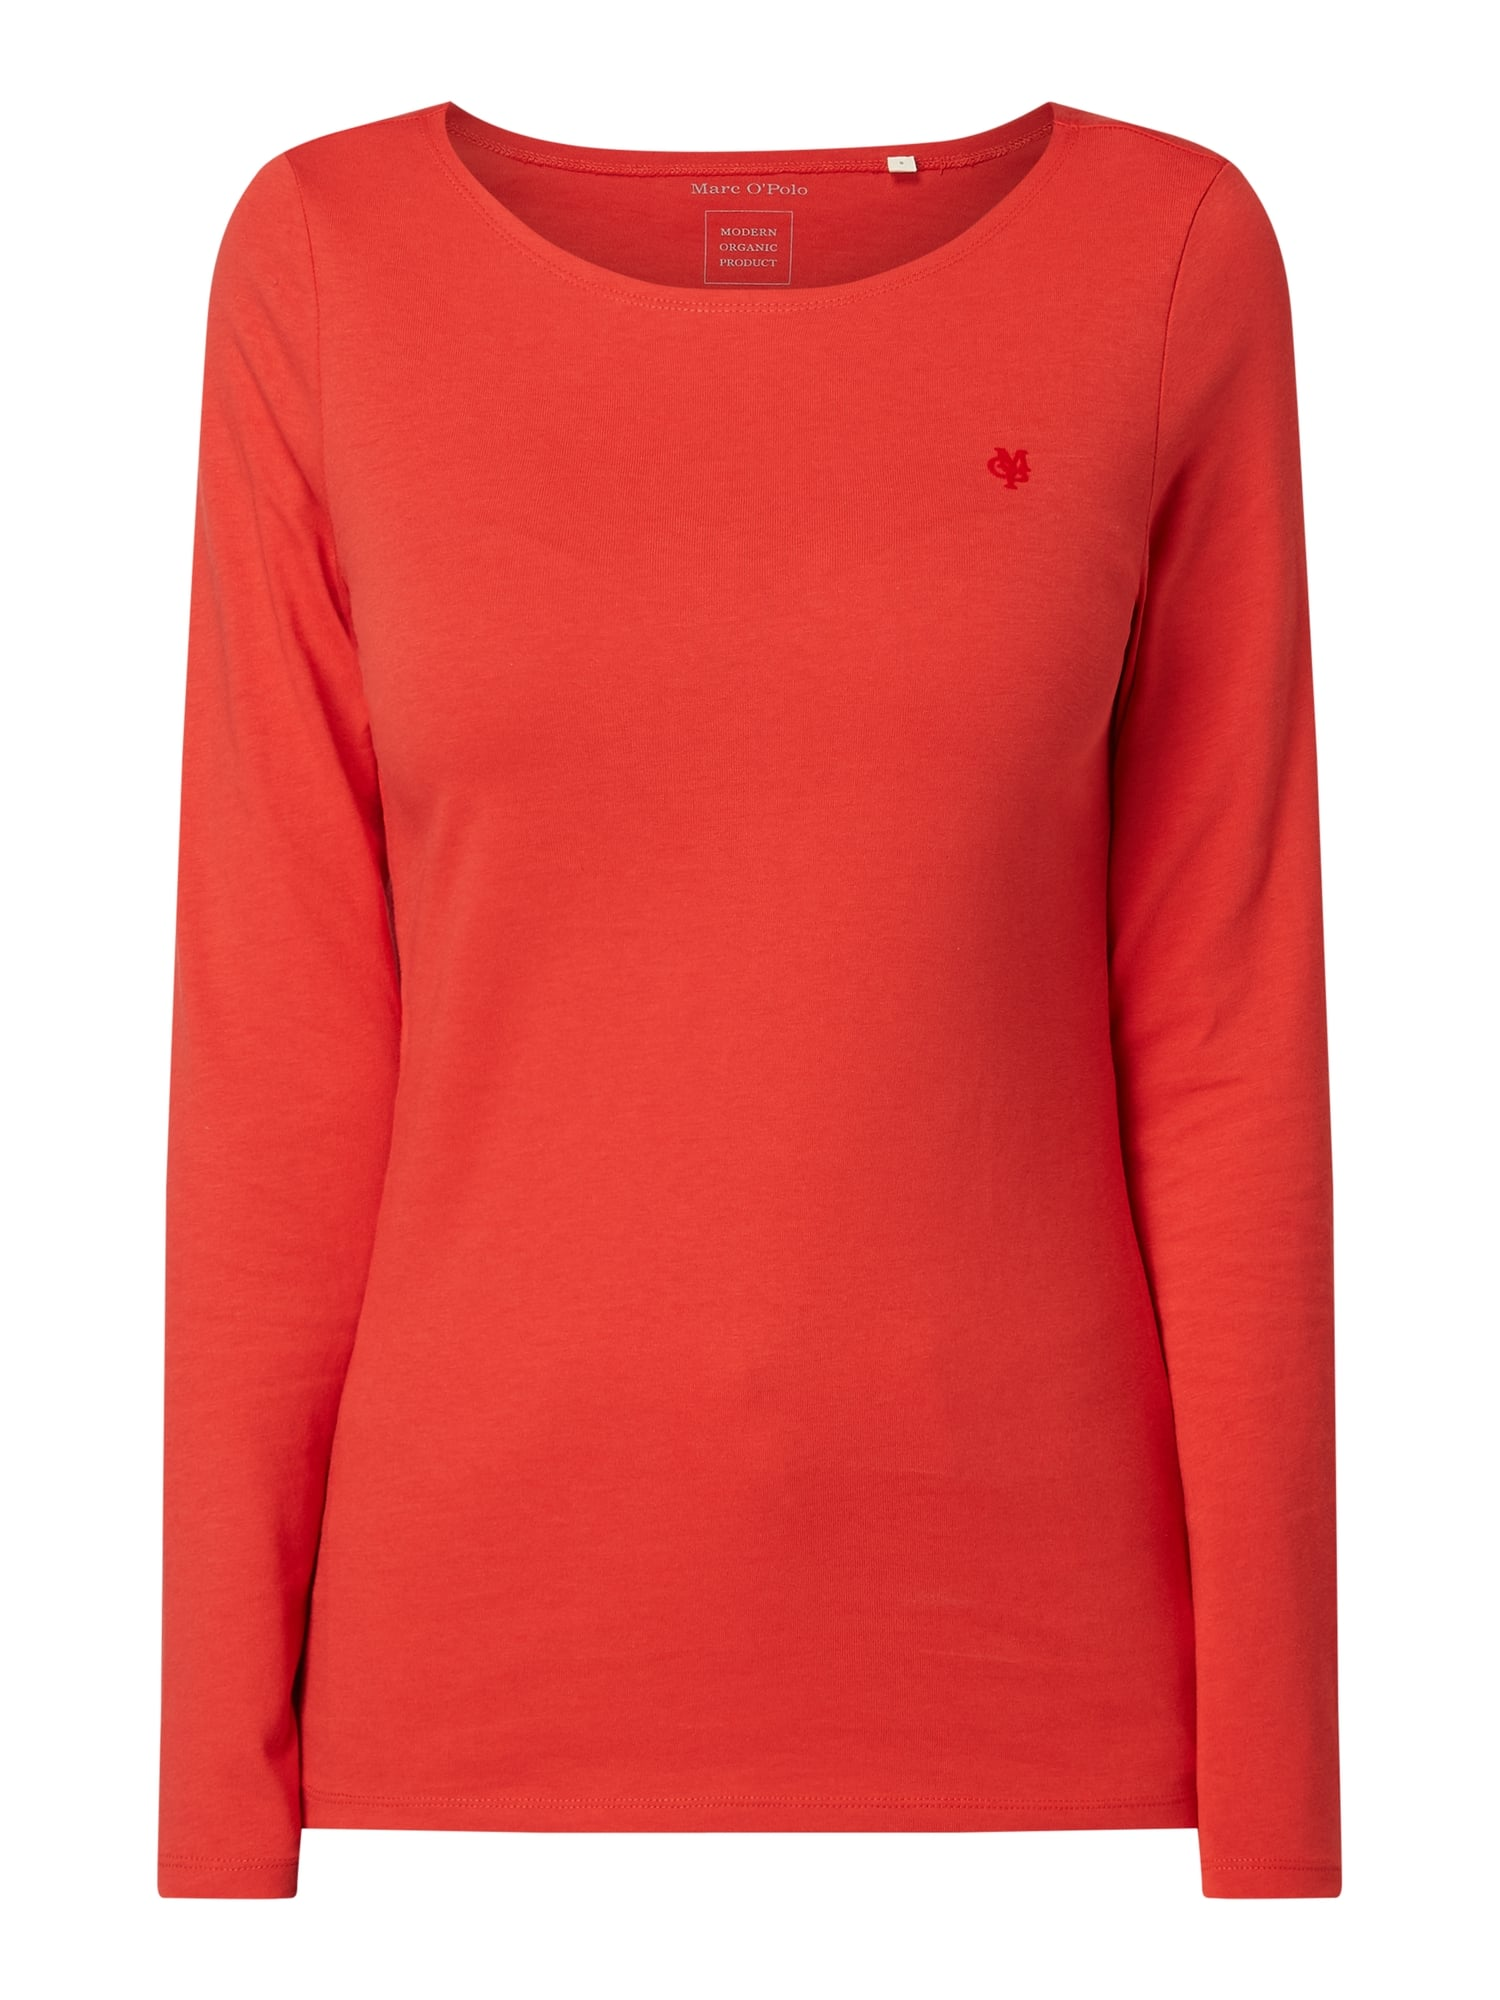 MARC O POLO Longsleeve aus Organic Cotton in Rot online kaufen (1006802) ▷ P&C Online Shop